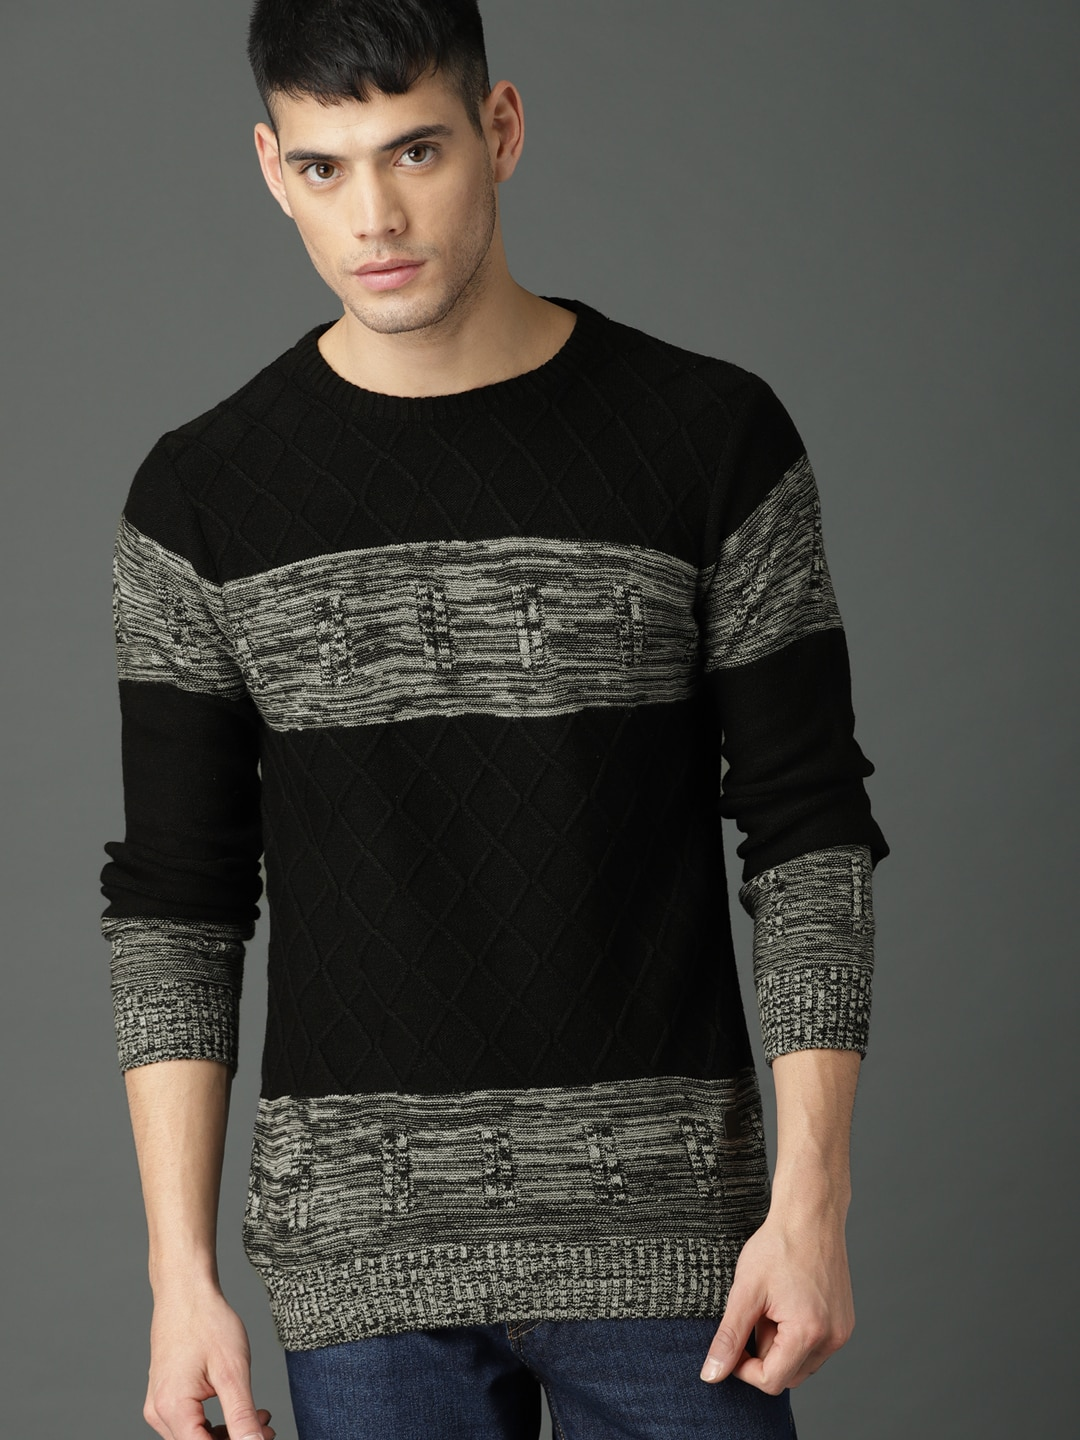 Roadster Sweaters Buy Roadster Sweaters Online In India